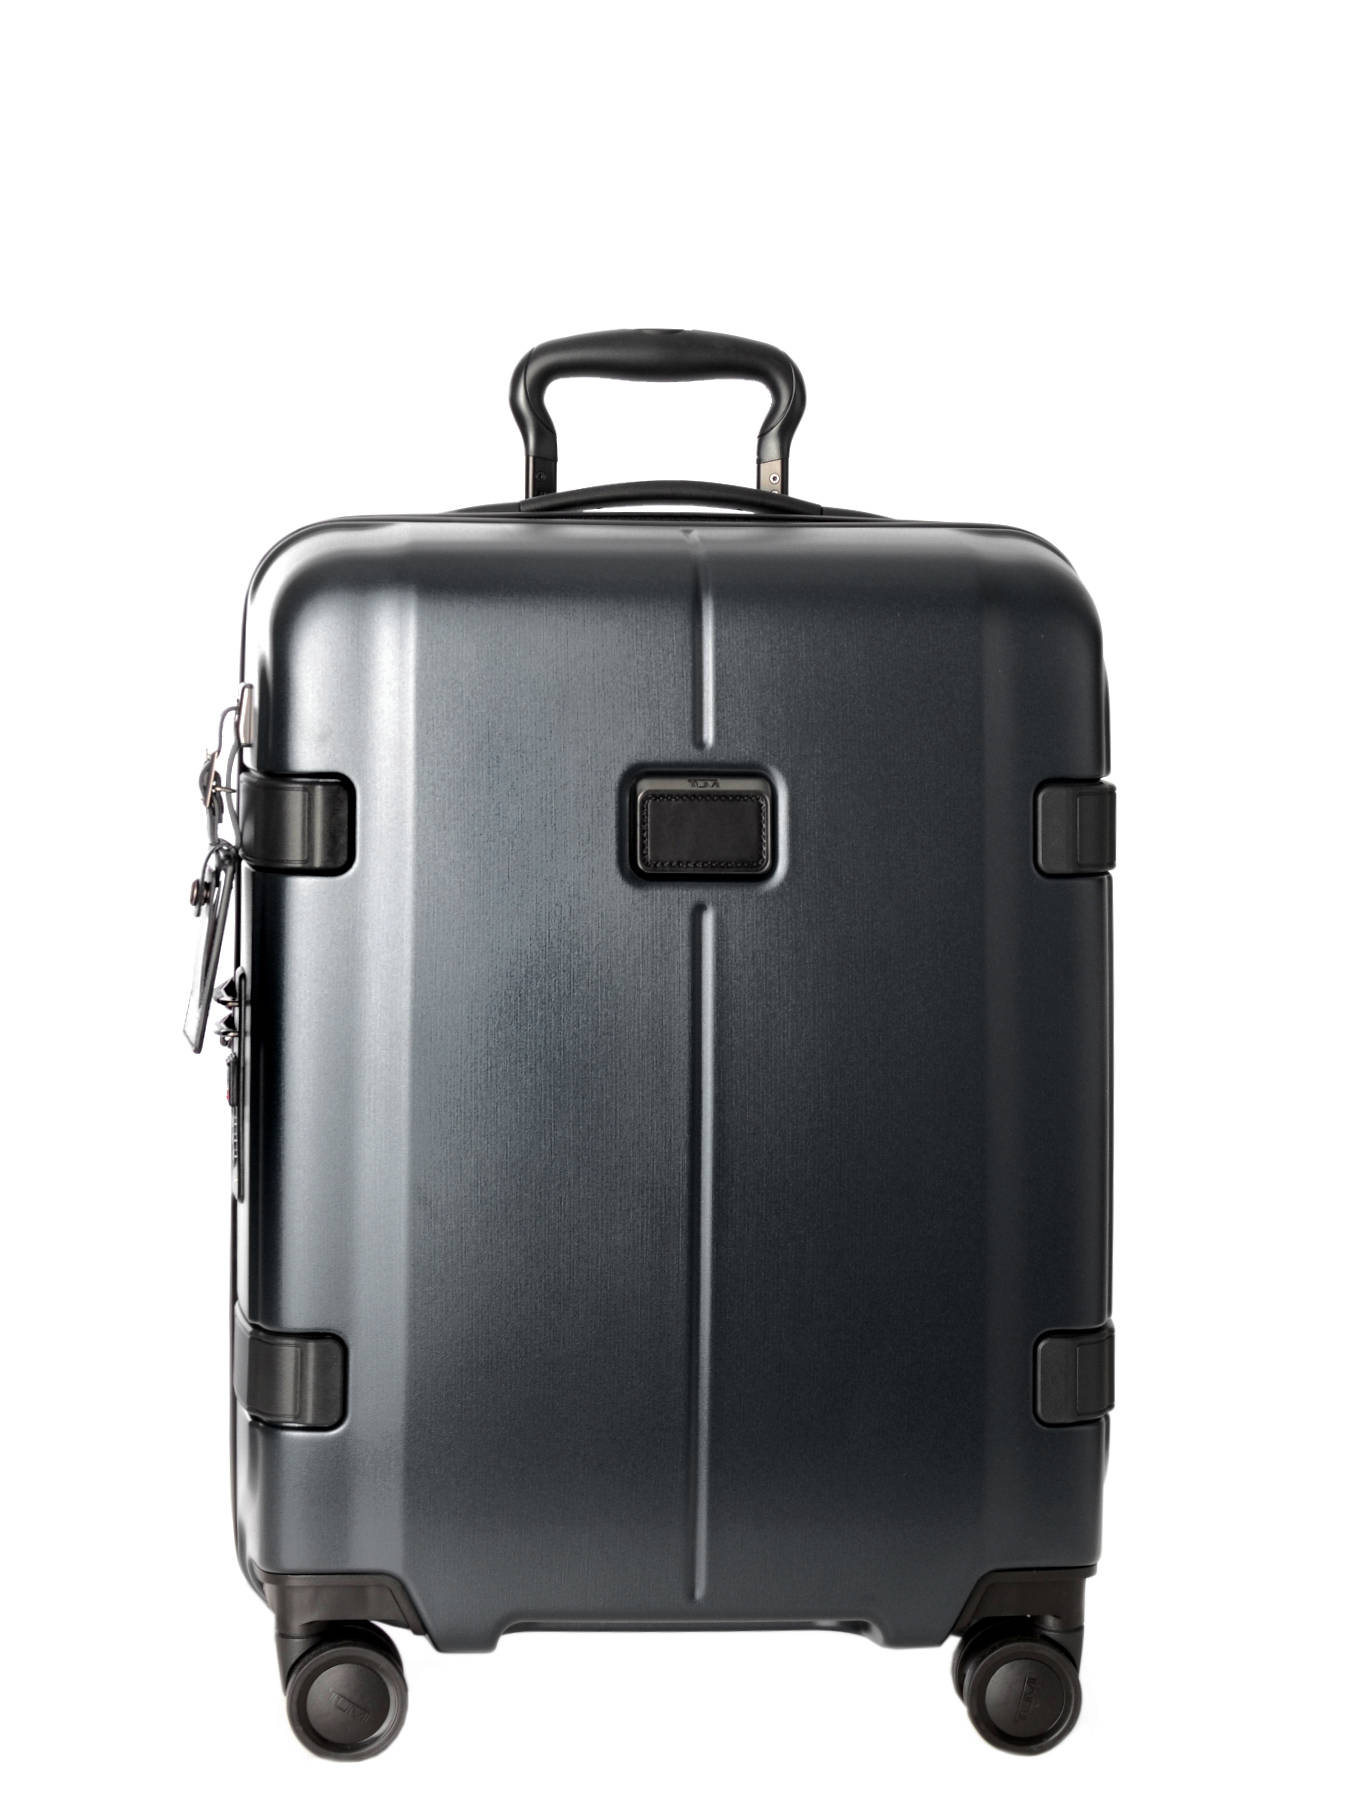 Cabin Luggage Tumi Gray tlx 226007